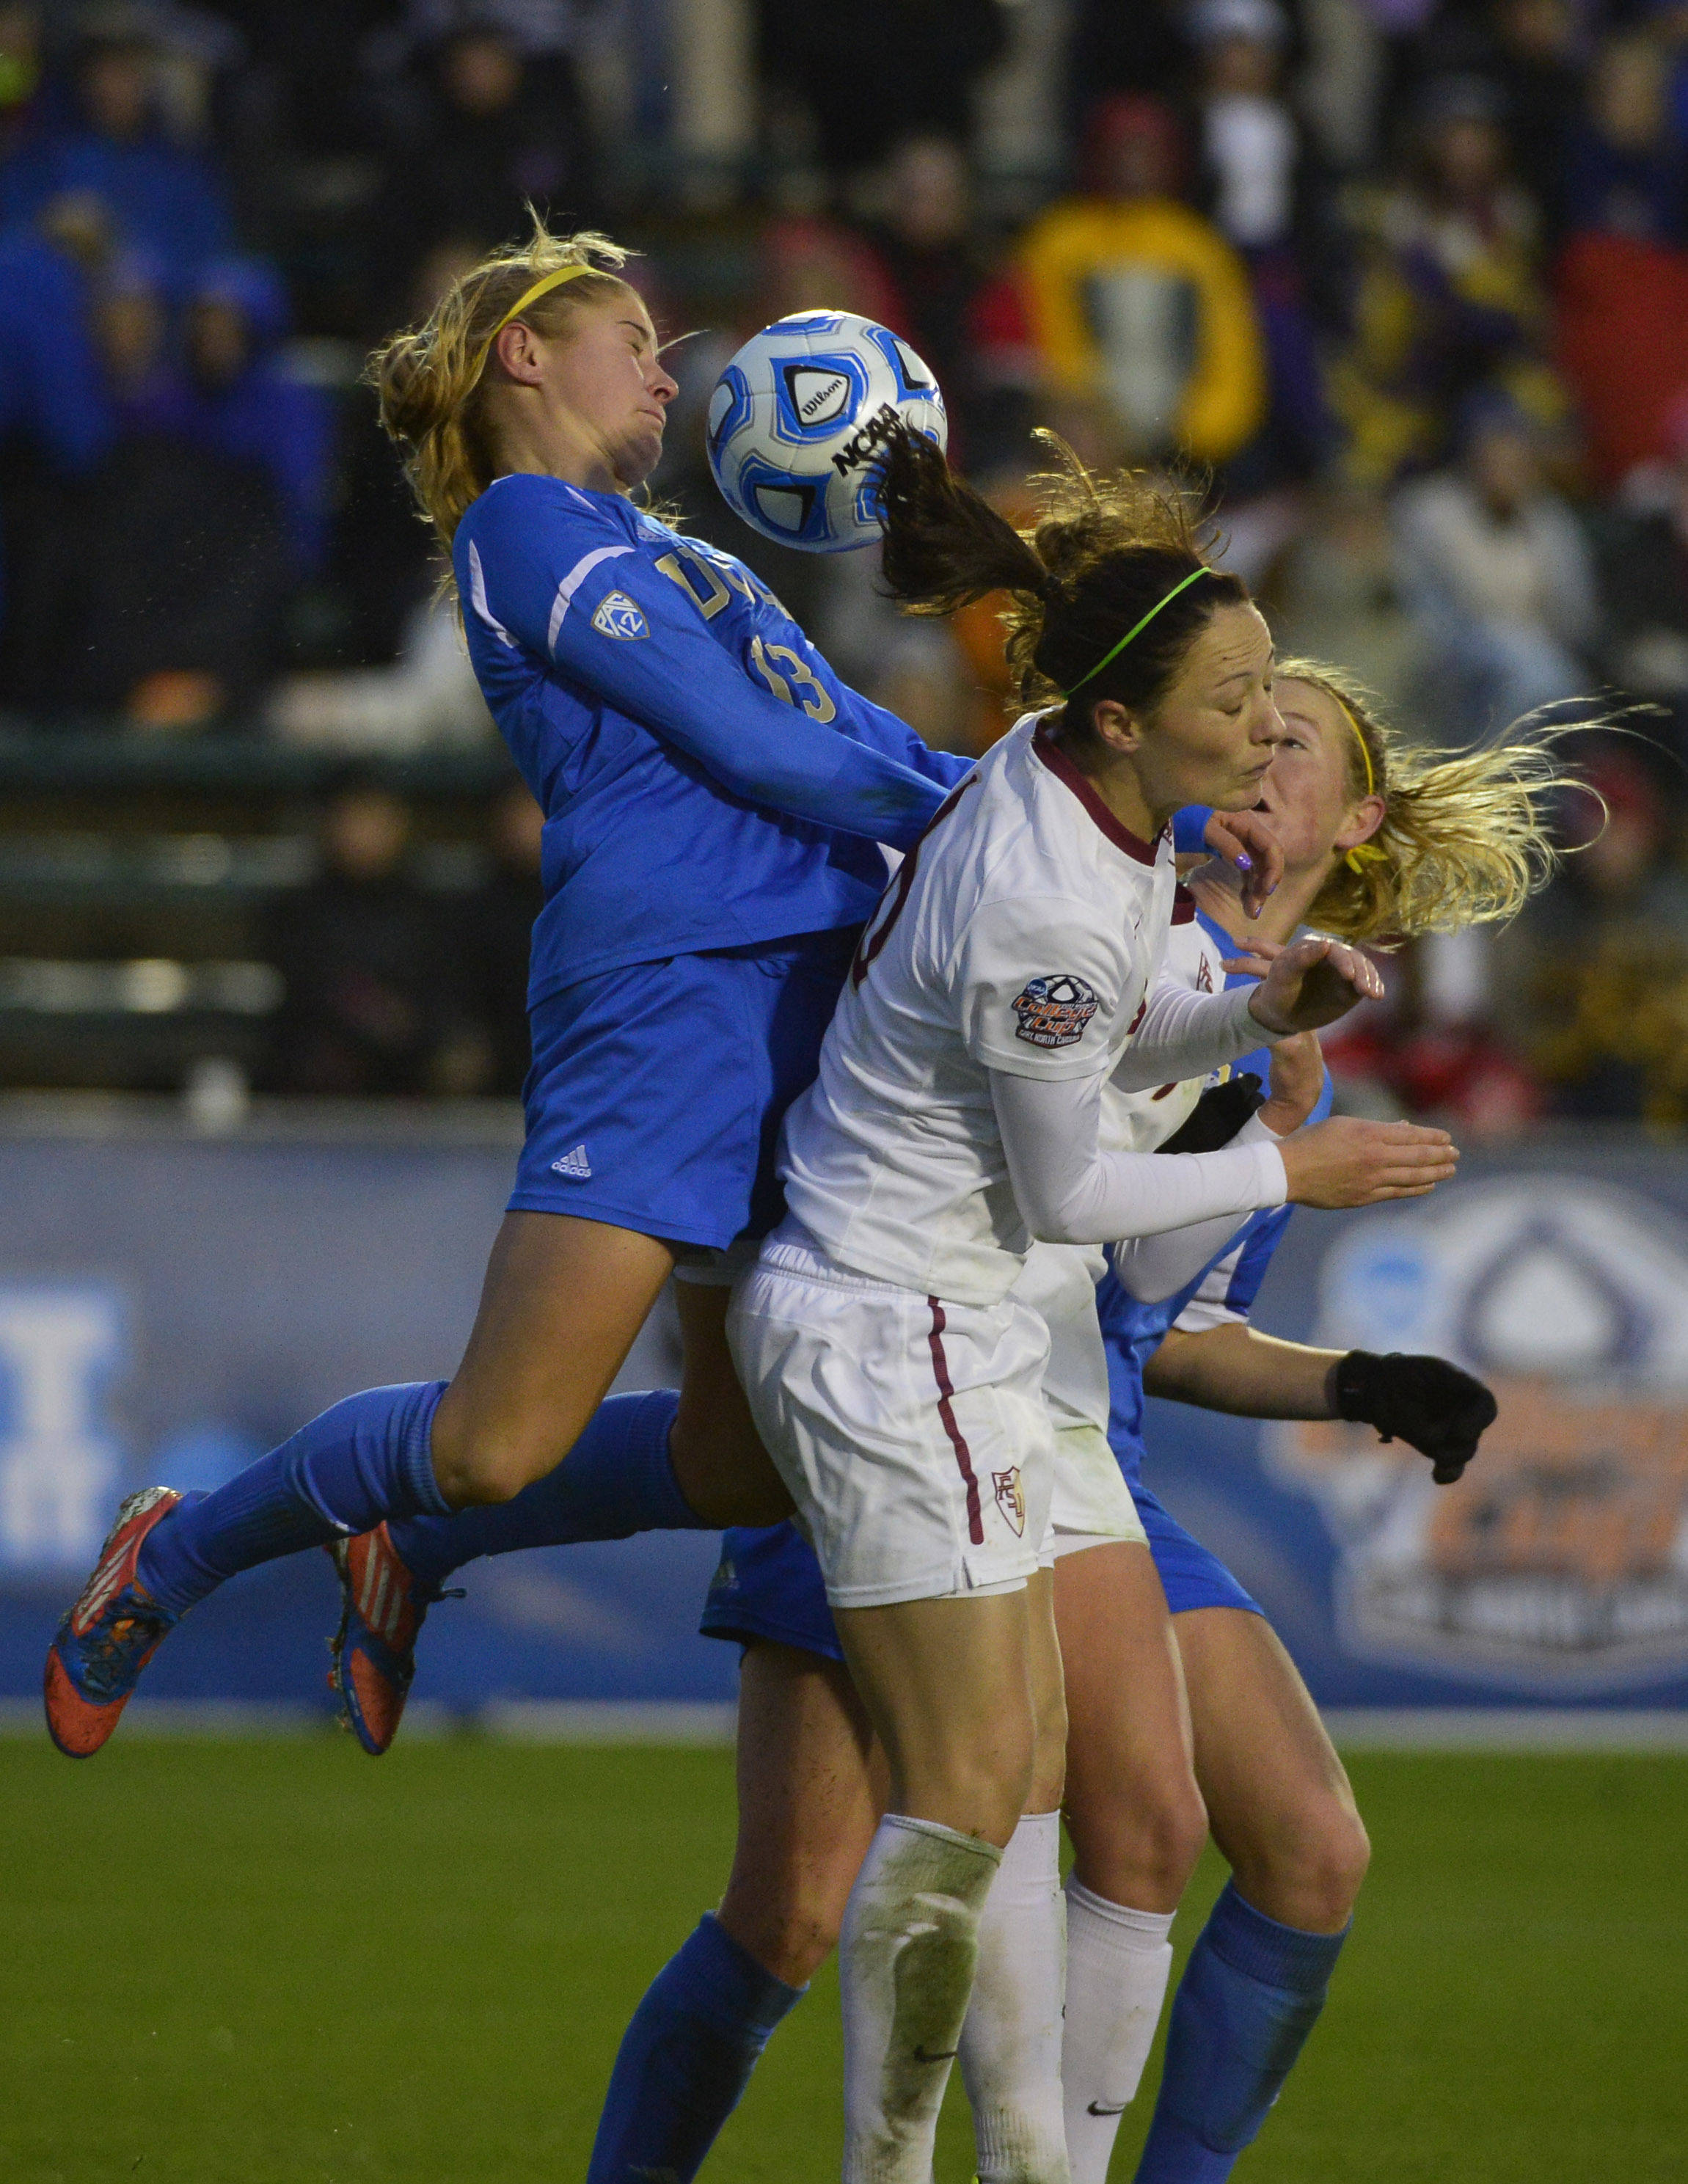 Dec 8, 2013; Cary, NC, USA; UCLA Bruins forward Rosie White (13) and UCLA Bruins midfield/forward Sam Mewis (22) and Florida State Seminoles defender Megan Campbell (6) go up to head the ball. The Bruins defeated the Seminoles 1-0 in overtime at WakeMed Soccer Park. Mandatory Credit: Bob Donnan-USA TODAY Sports